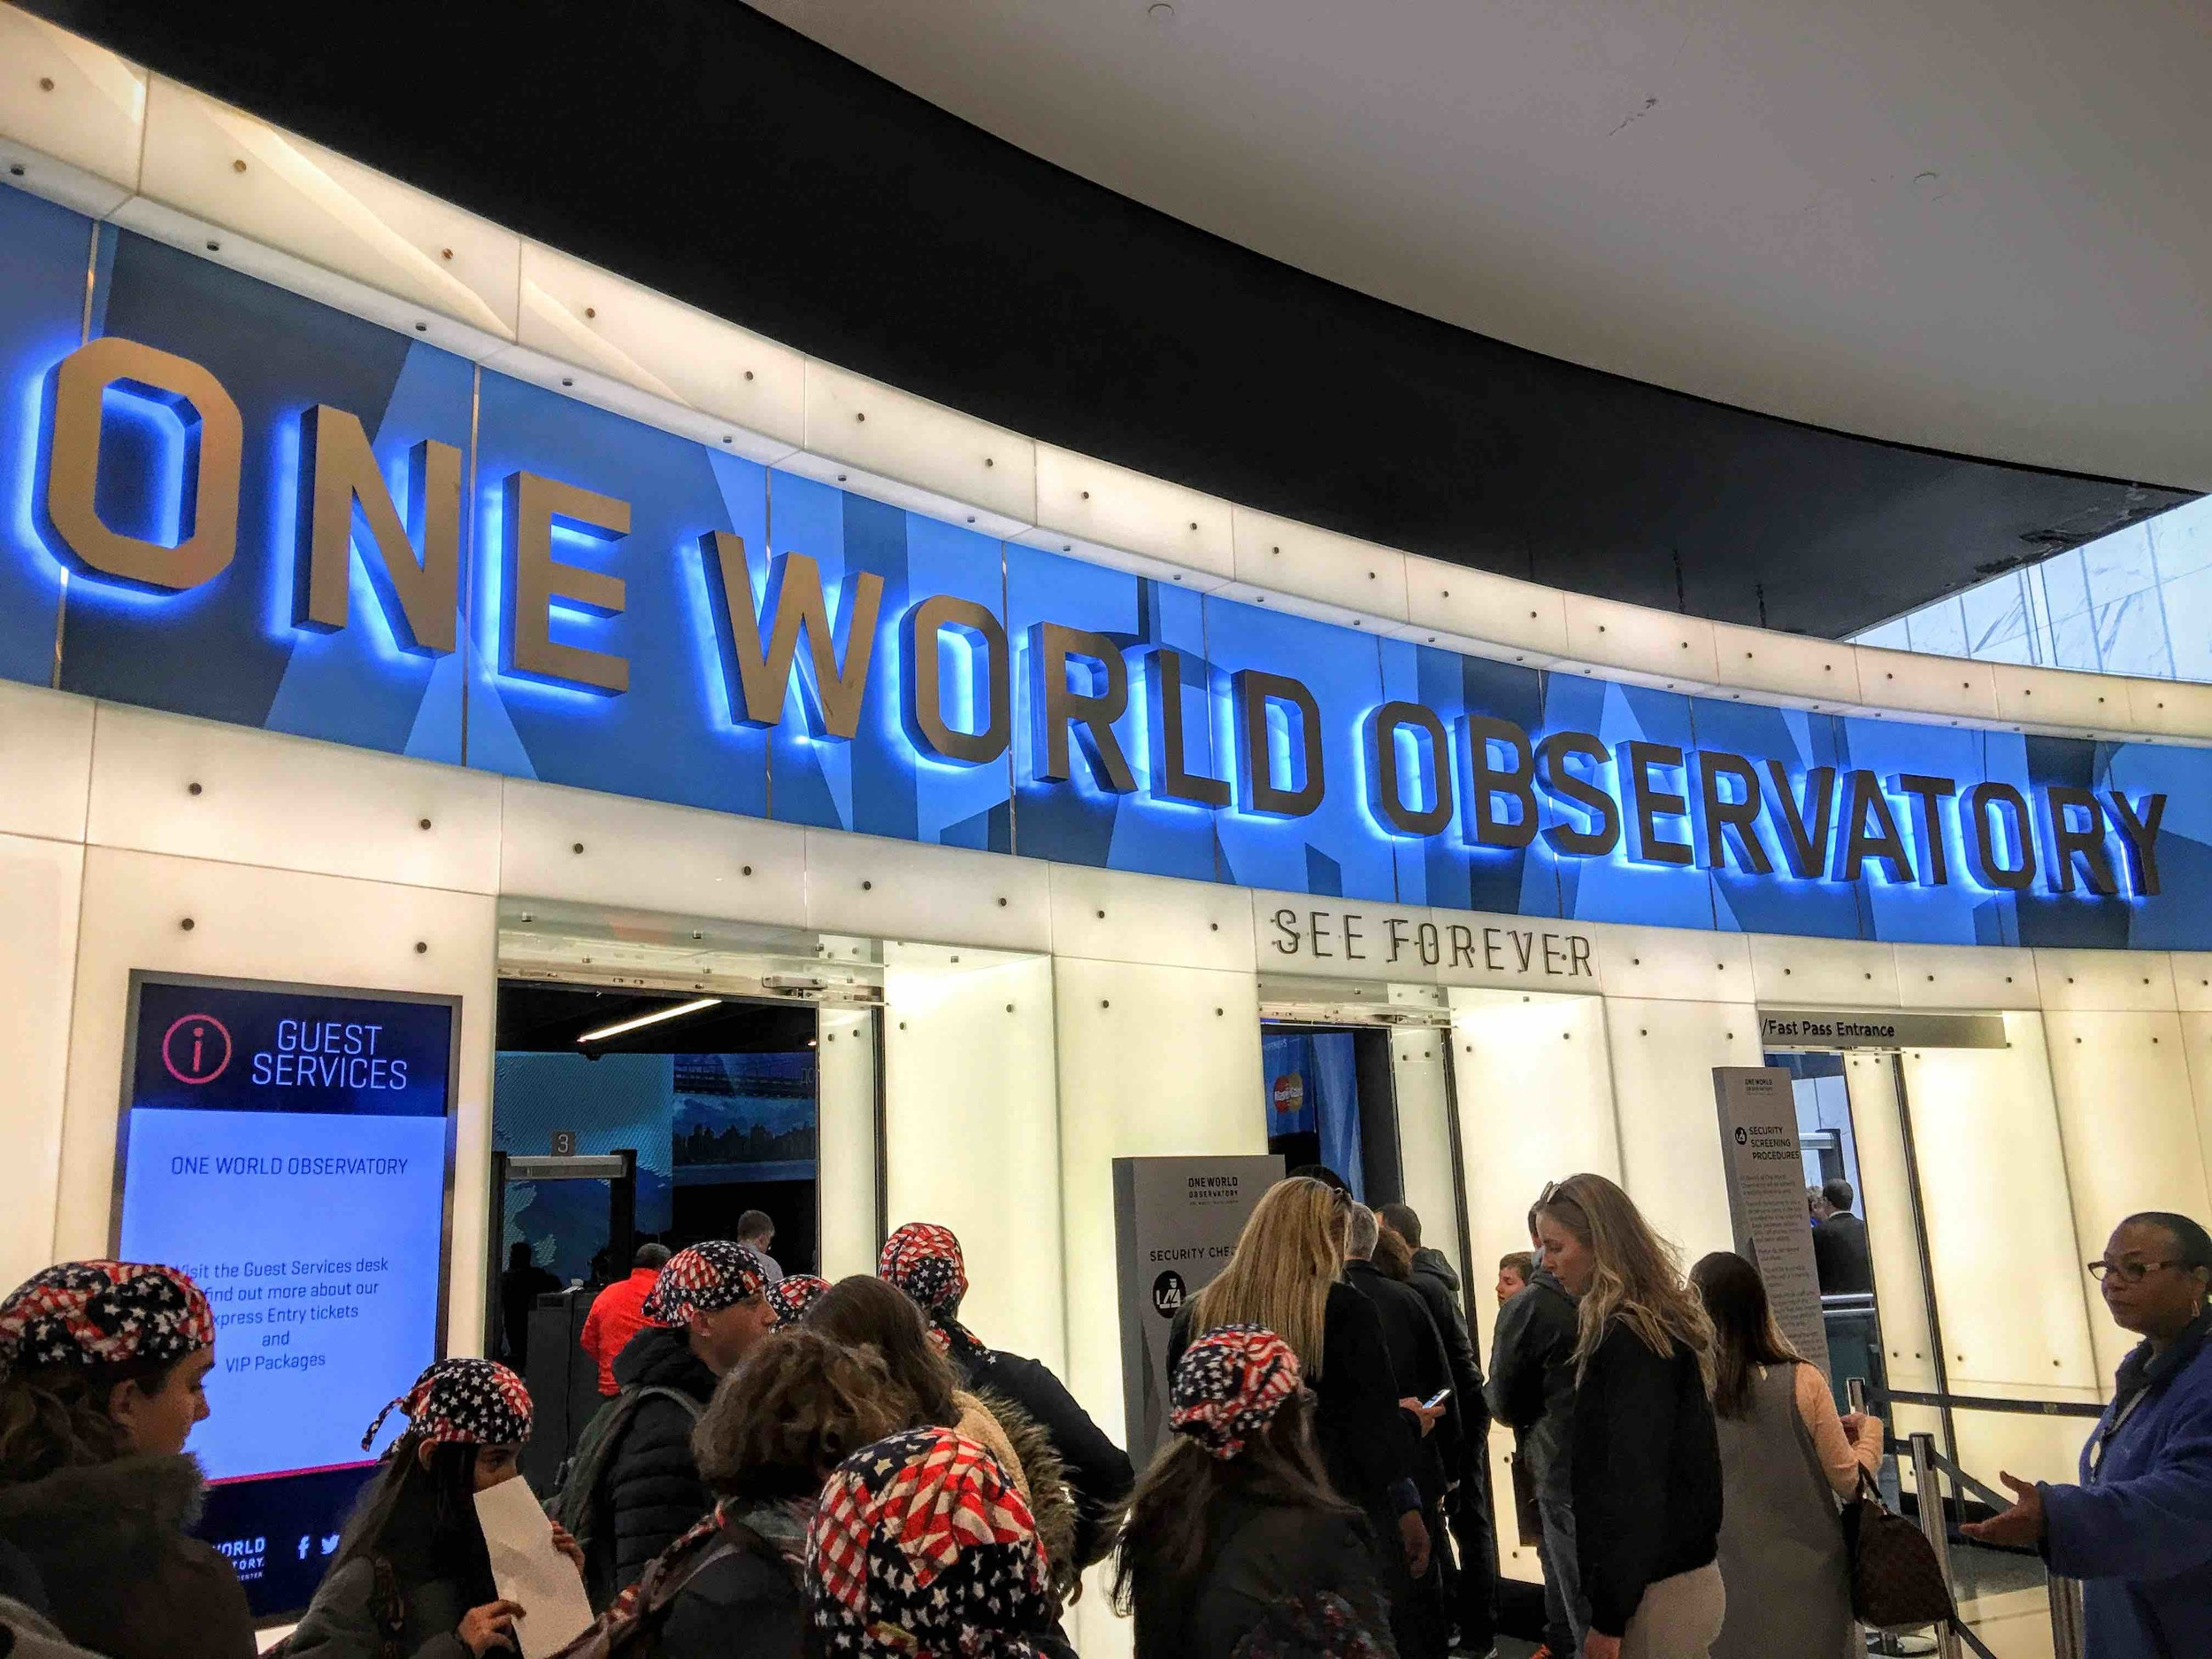 The entrance of the One World Observatory (OWO)